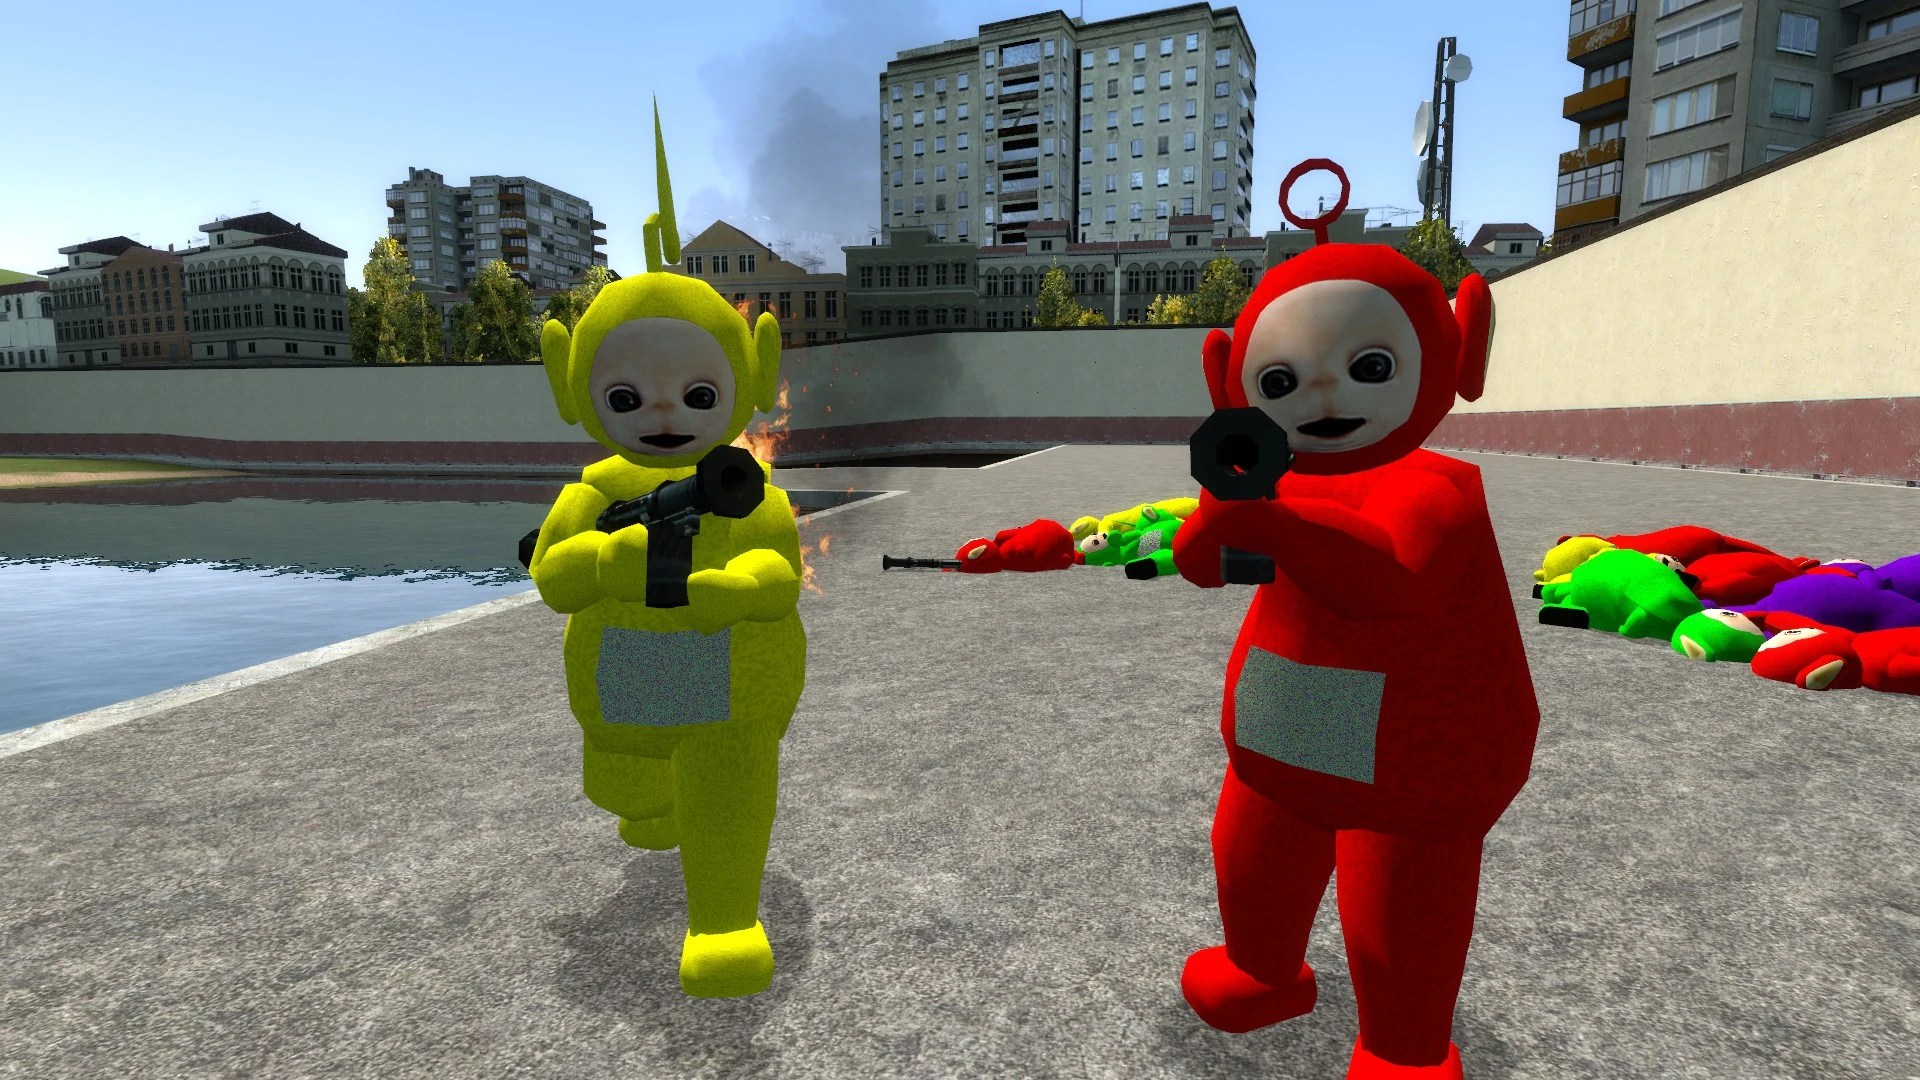 Gmod Character Models Download - Year of Clean Water